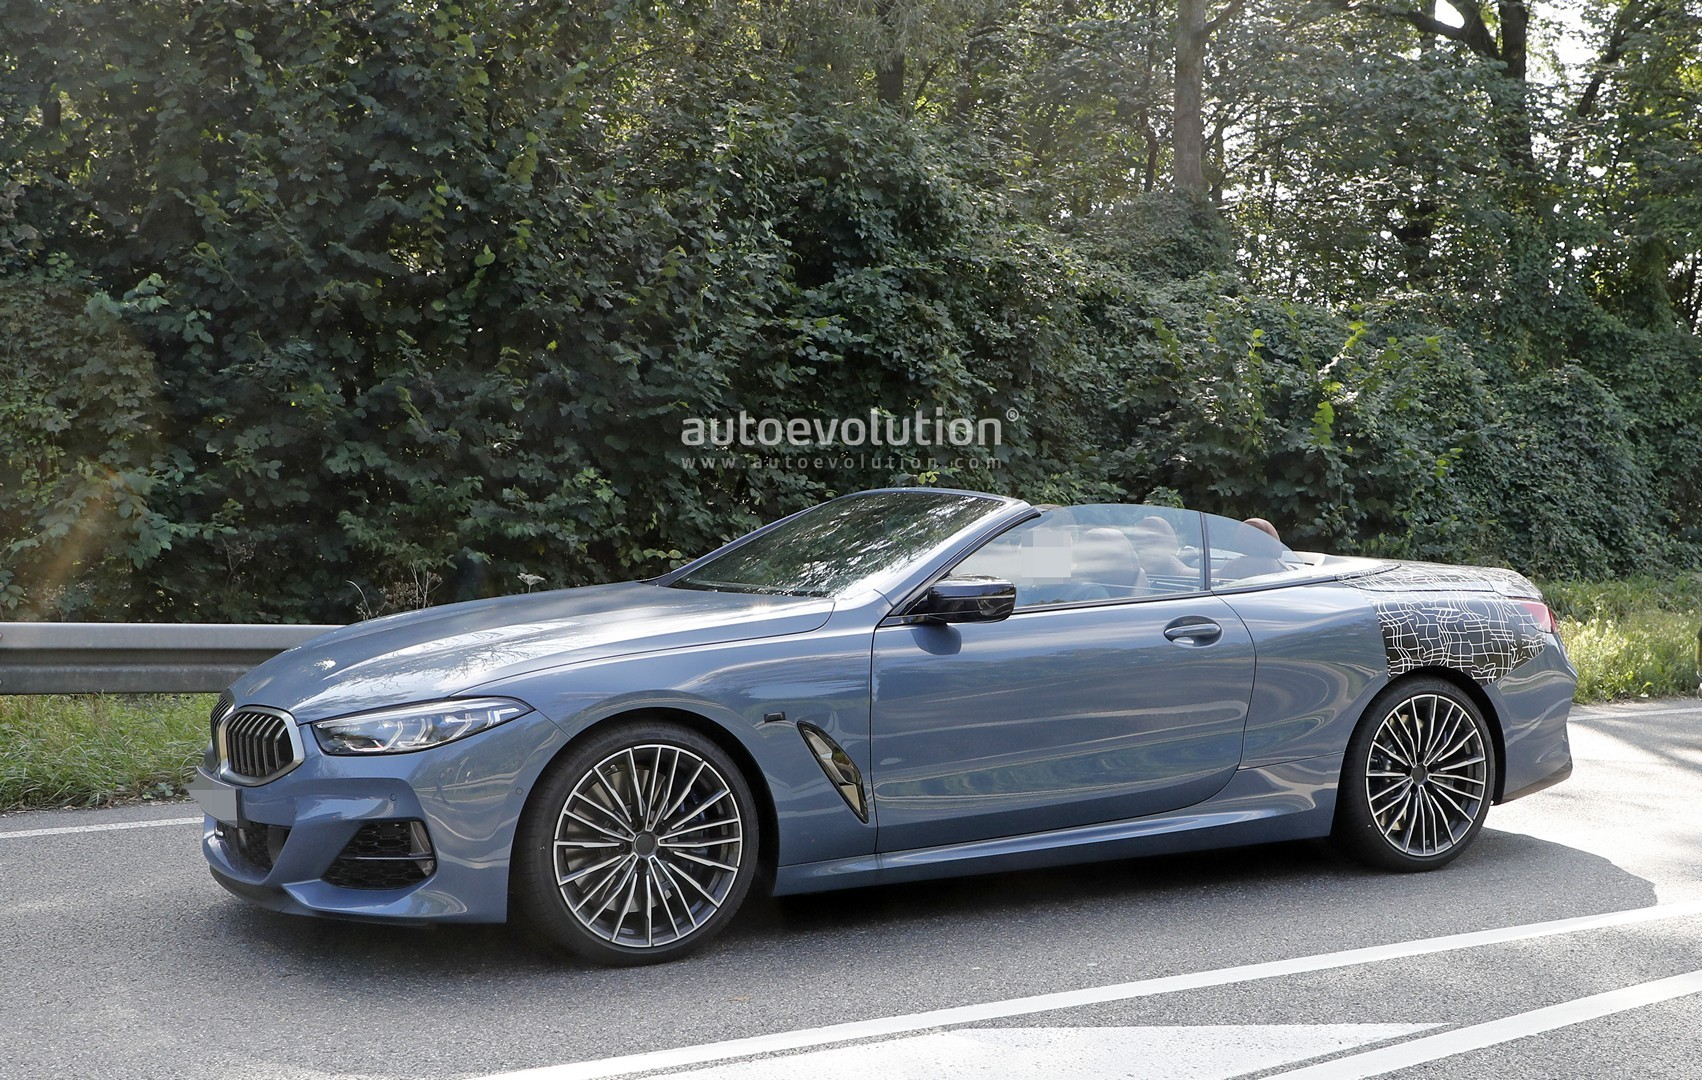 New Bmw 8 Series Convertible M850i Completely Revealed